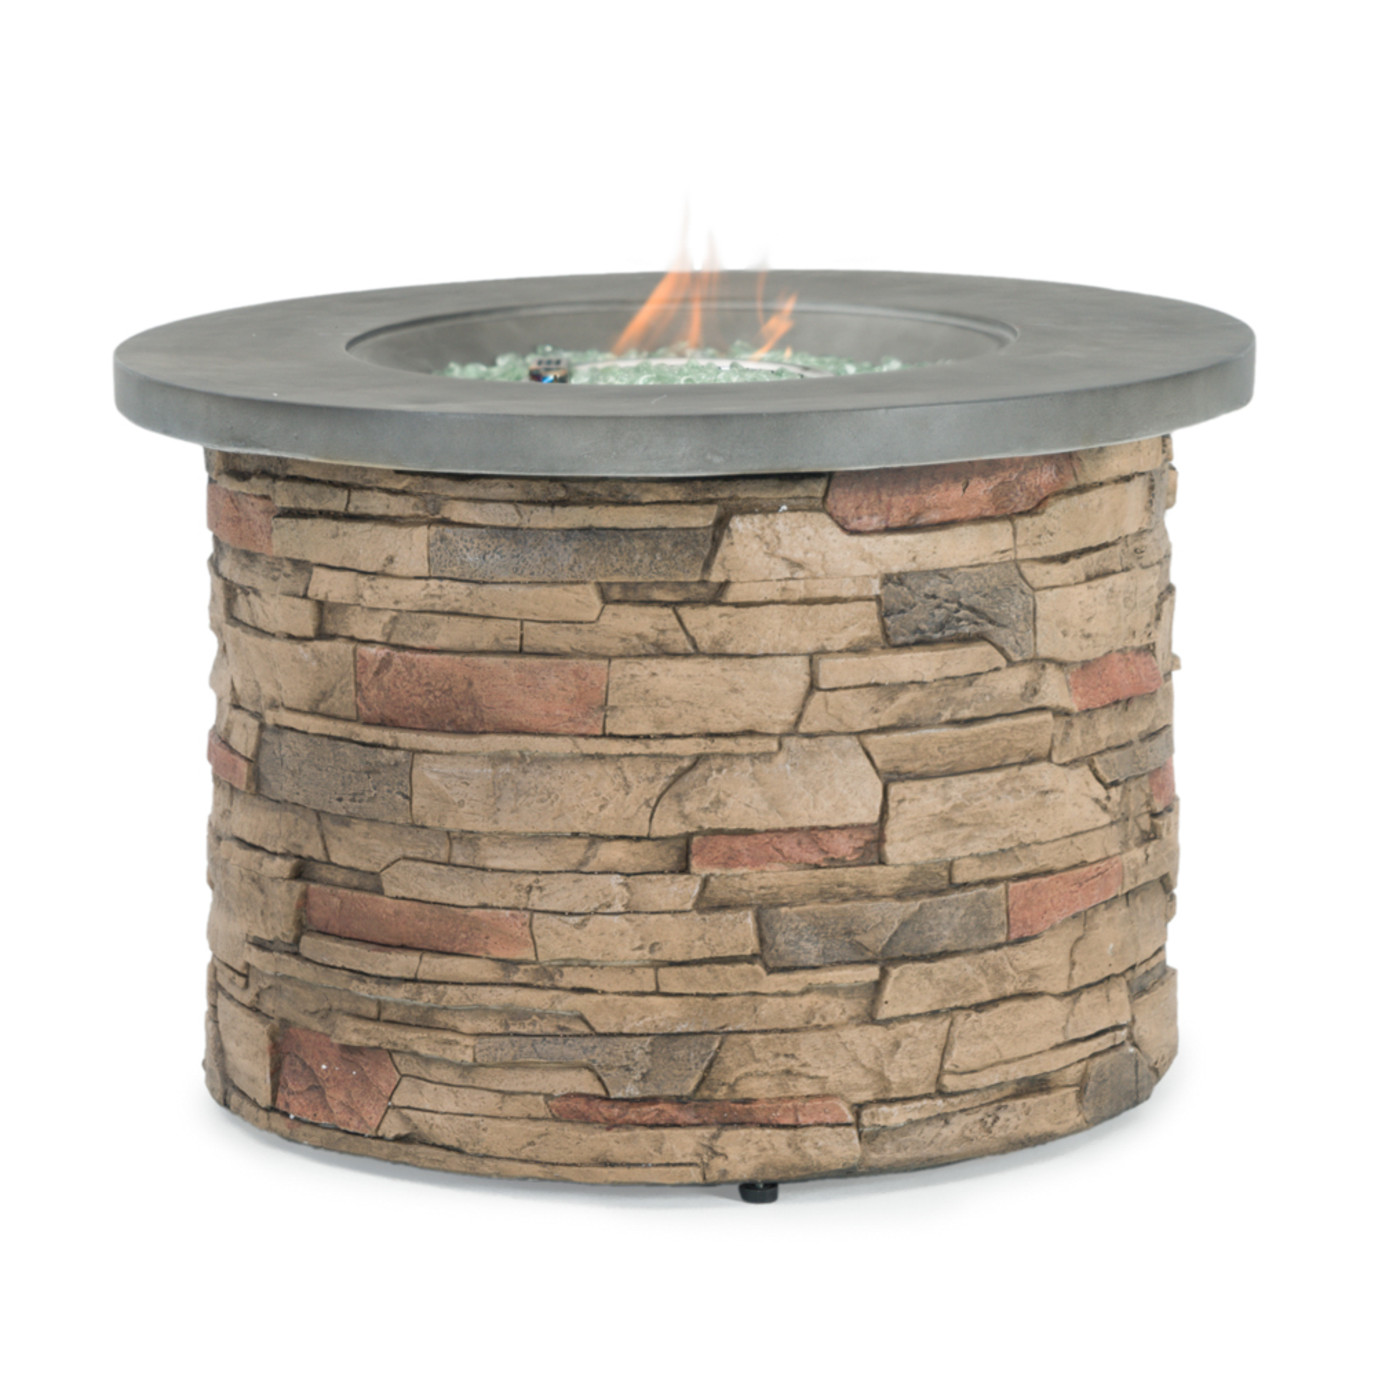 Sego Lily™ Sage Round Stone Fire Table